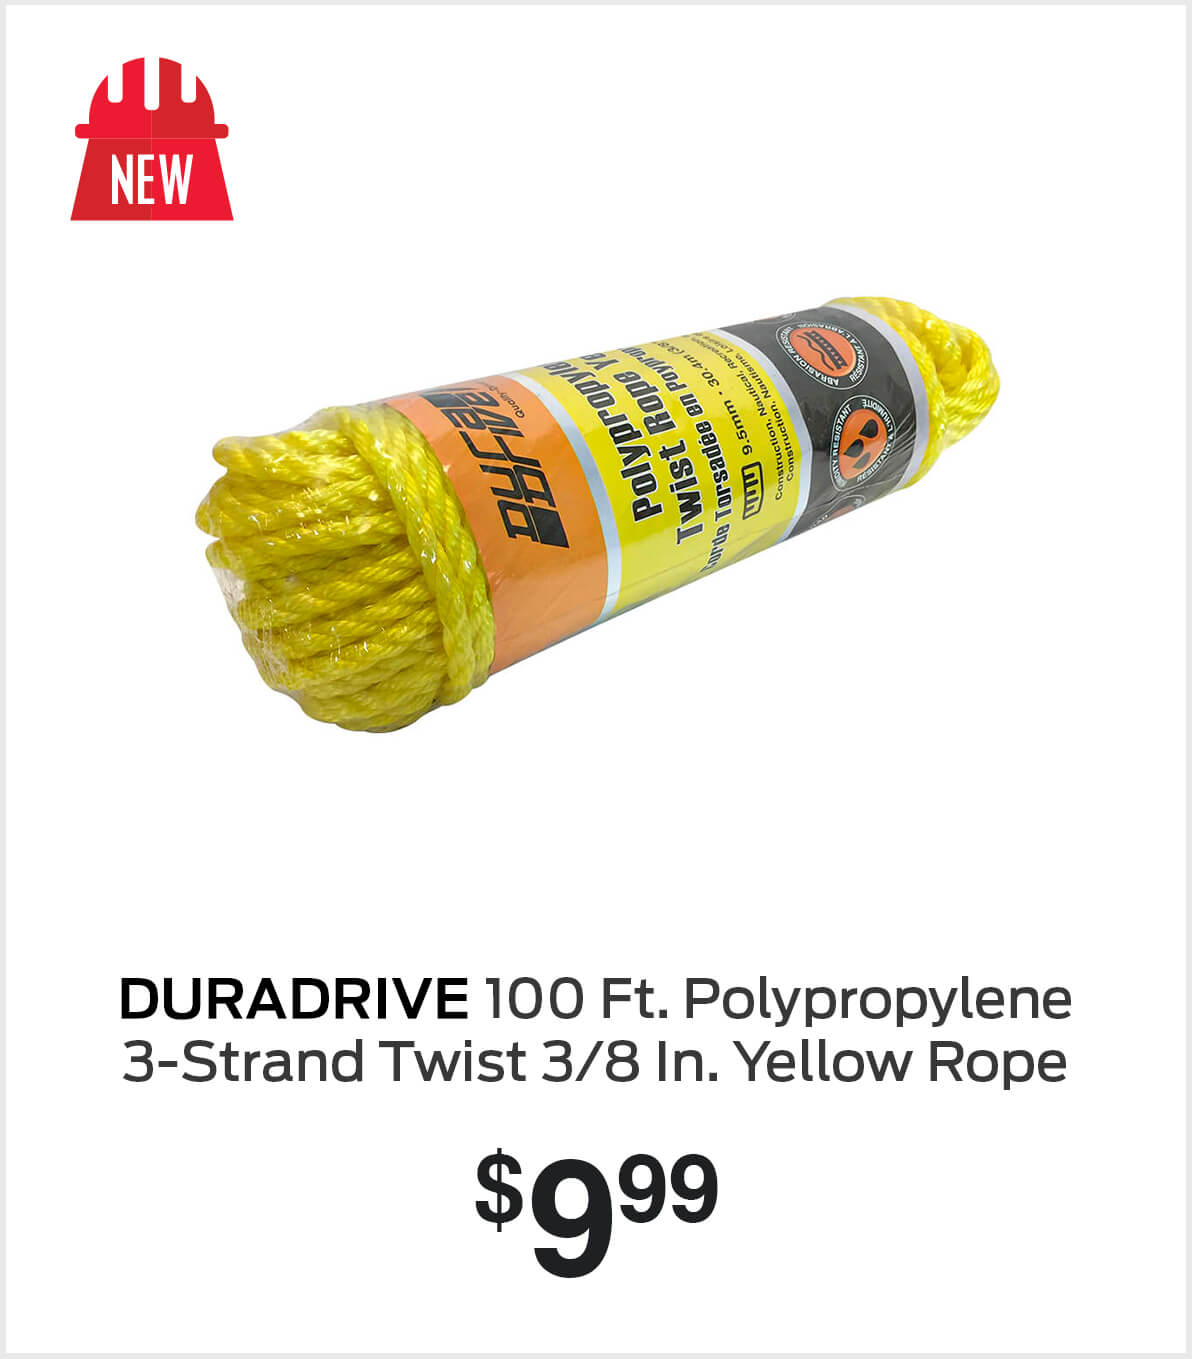 Shop Duradrive Polypropylene 3-Strand Twist 3/8 In. Yellow Rope 100 Ft.